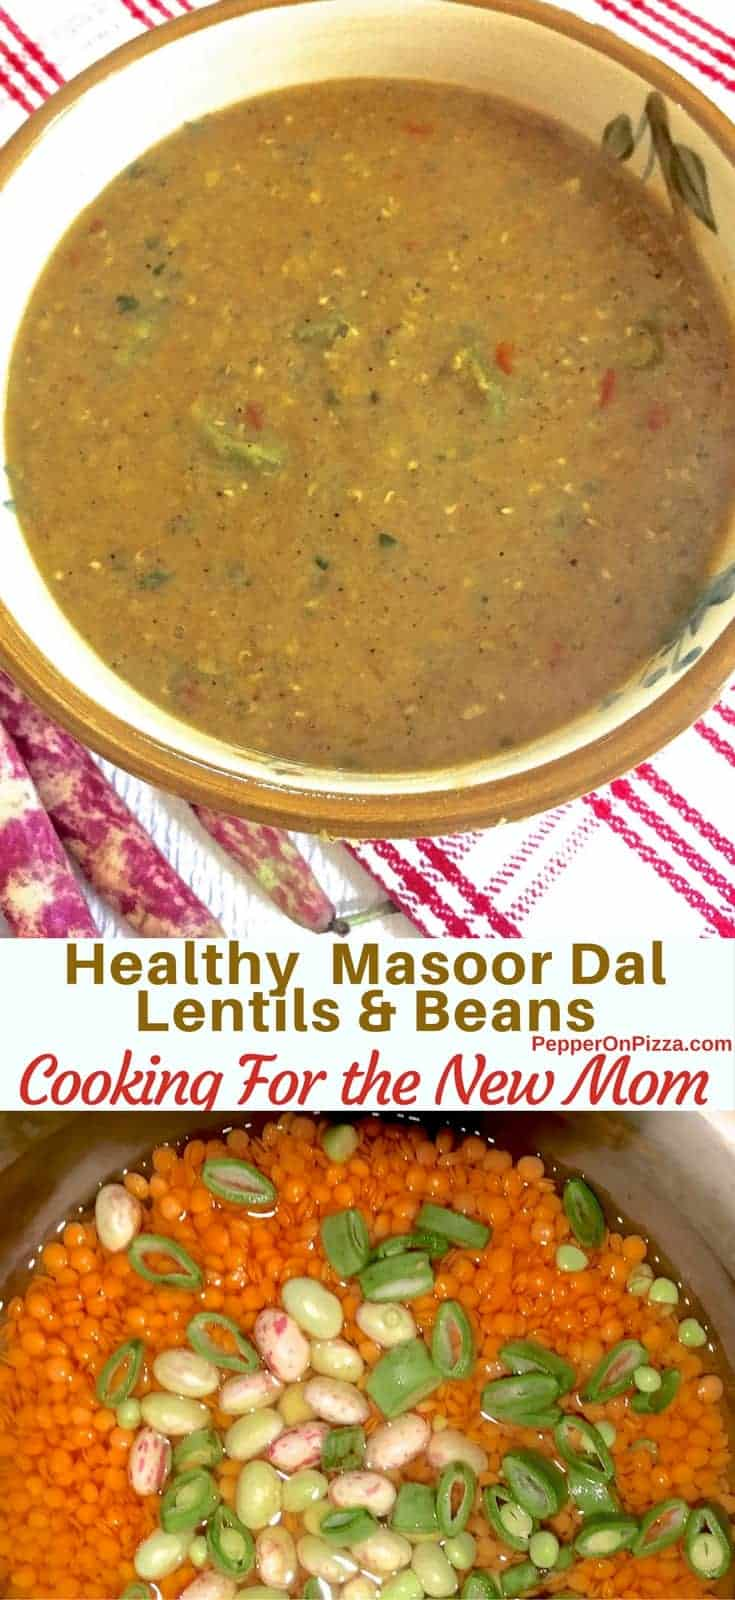 Nourishing Masoor Dal for the New Mom. Easy tasty split red lentils and beans to facilitate lactation. Nutritious, high in protein and minerals, easy to digest